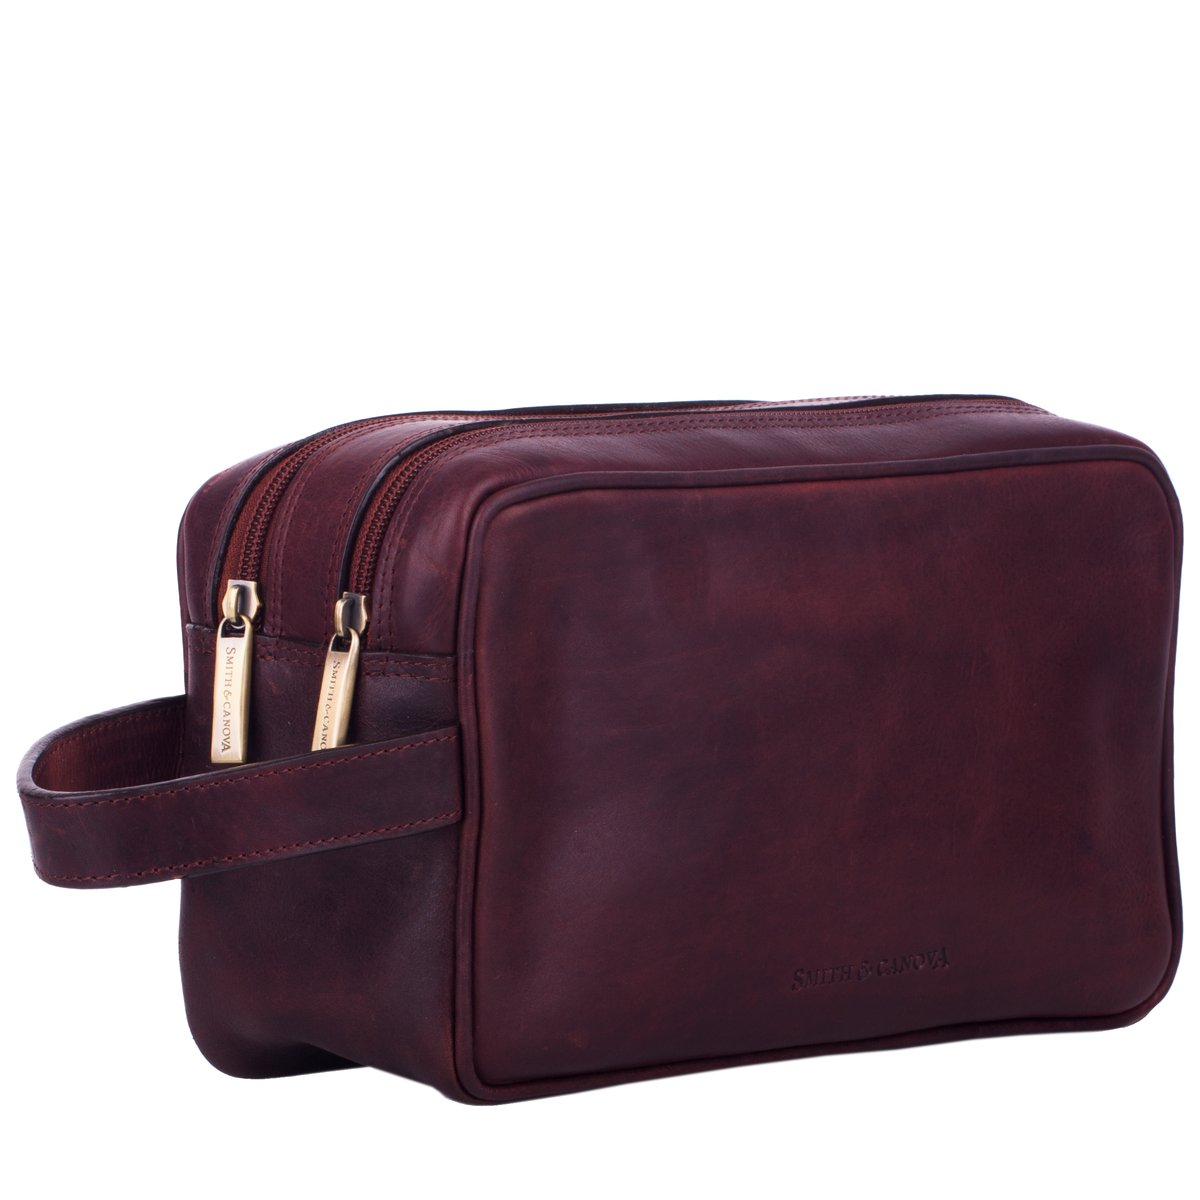 Aspen Double Zip Top Wash Bag £78